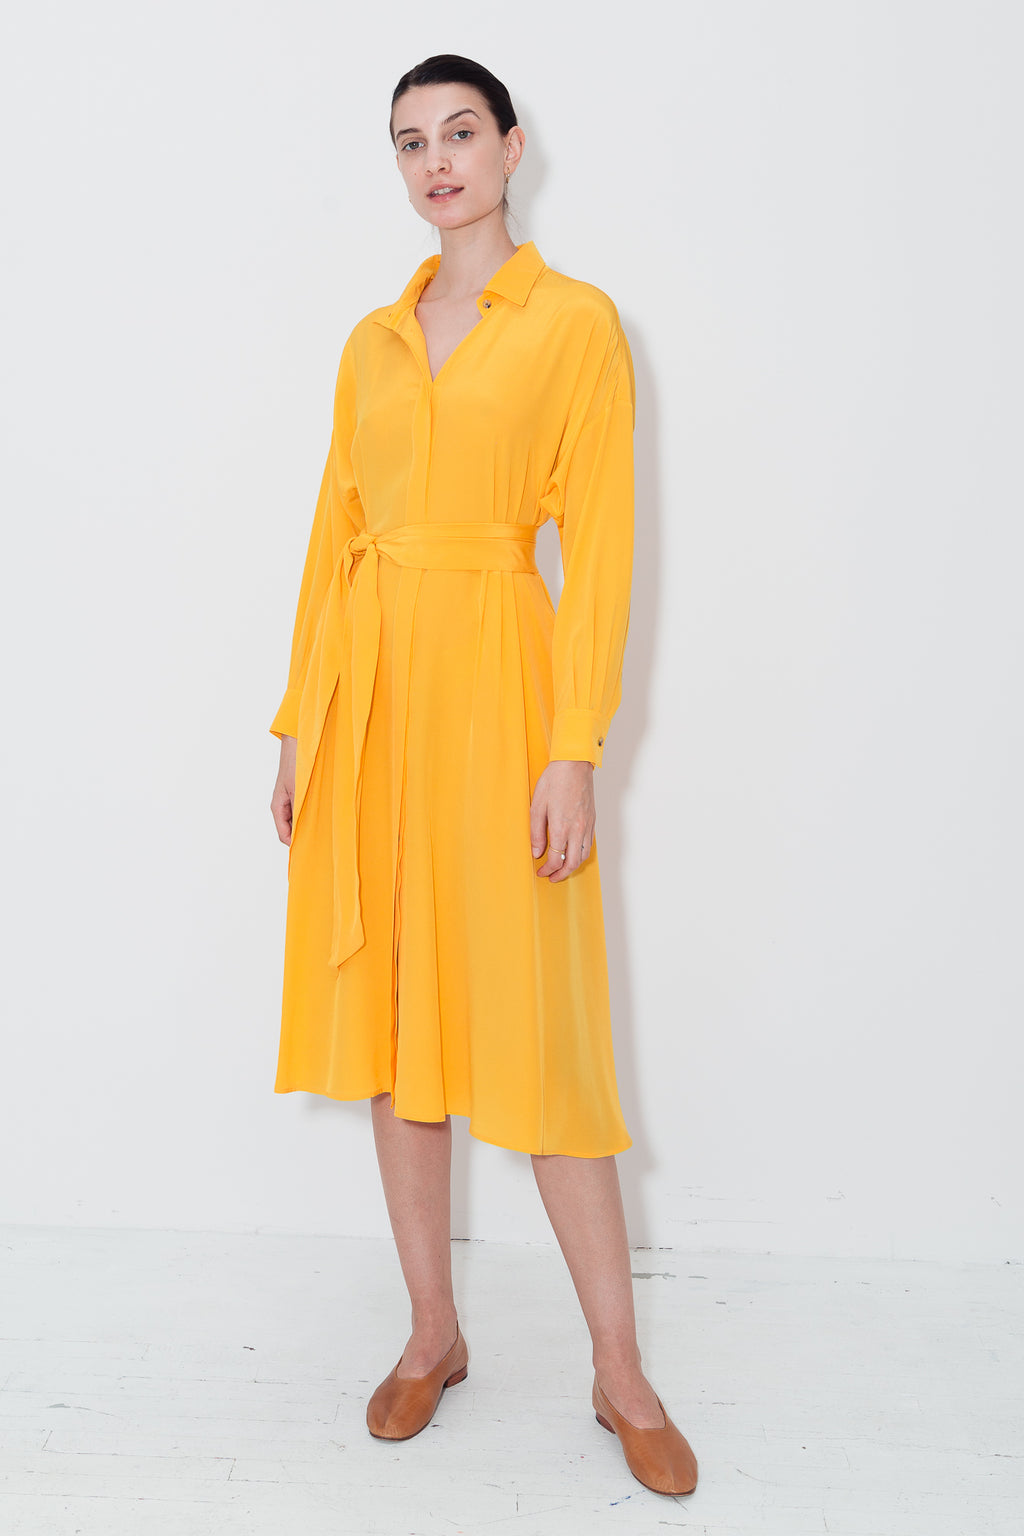 Citric Orange Shirt Dress